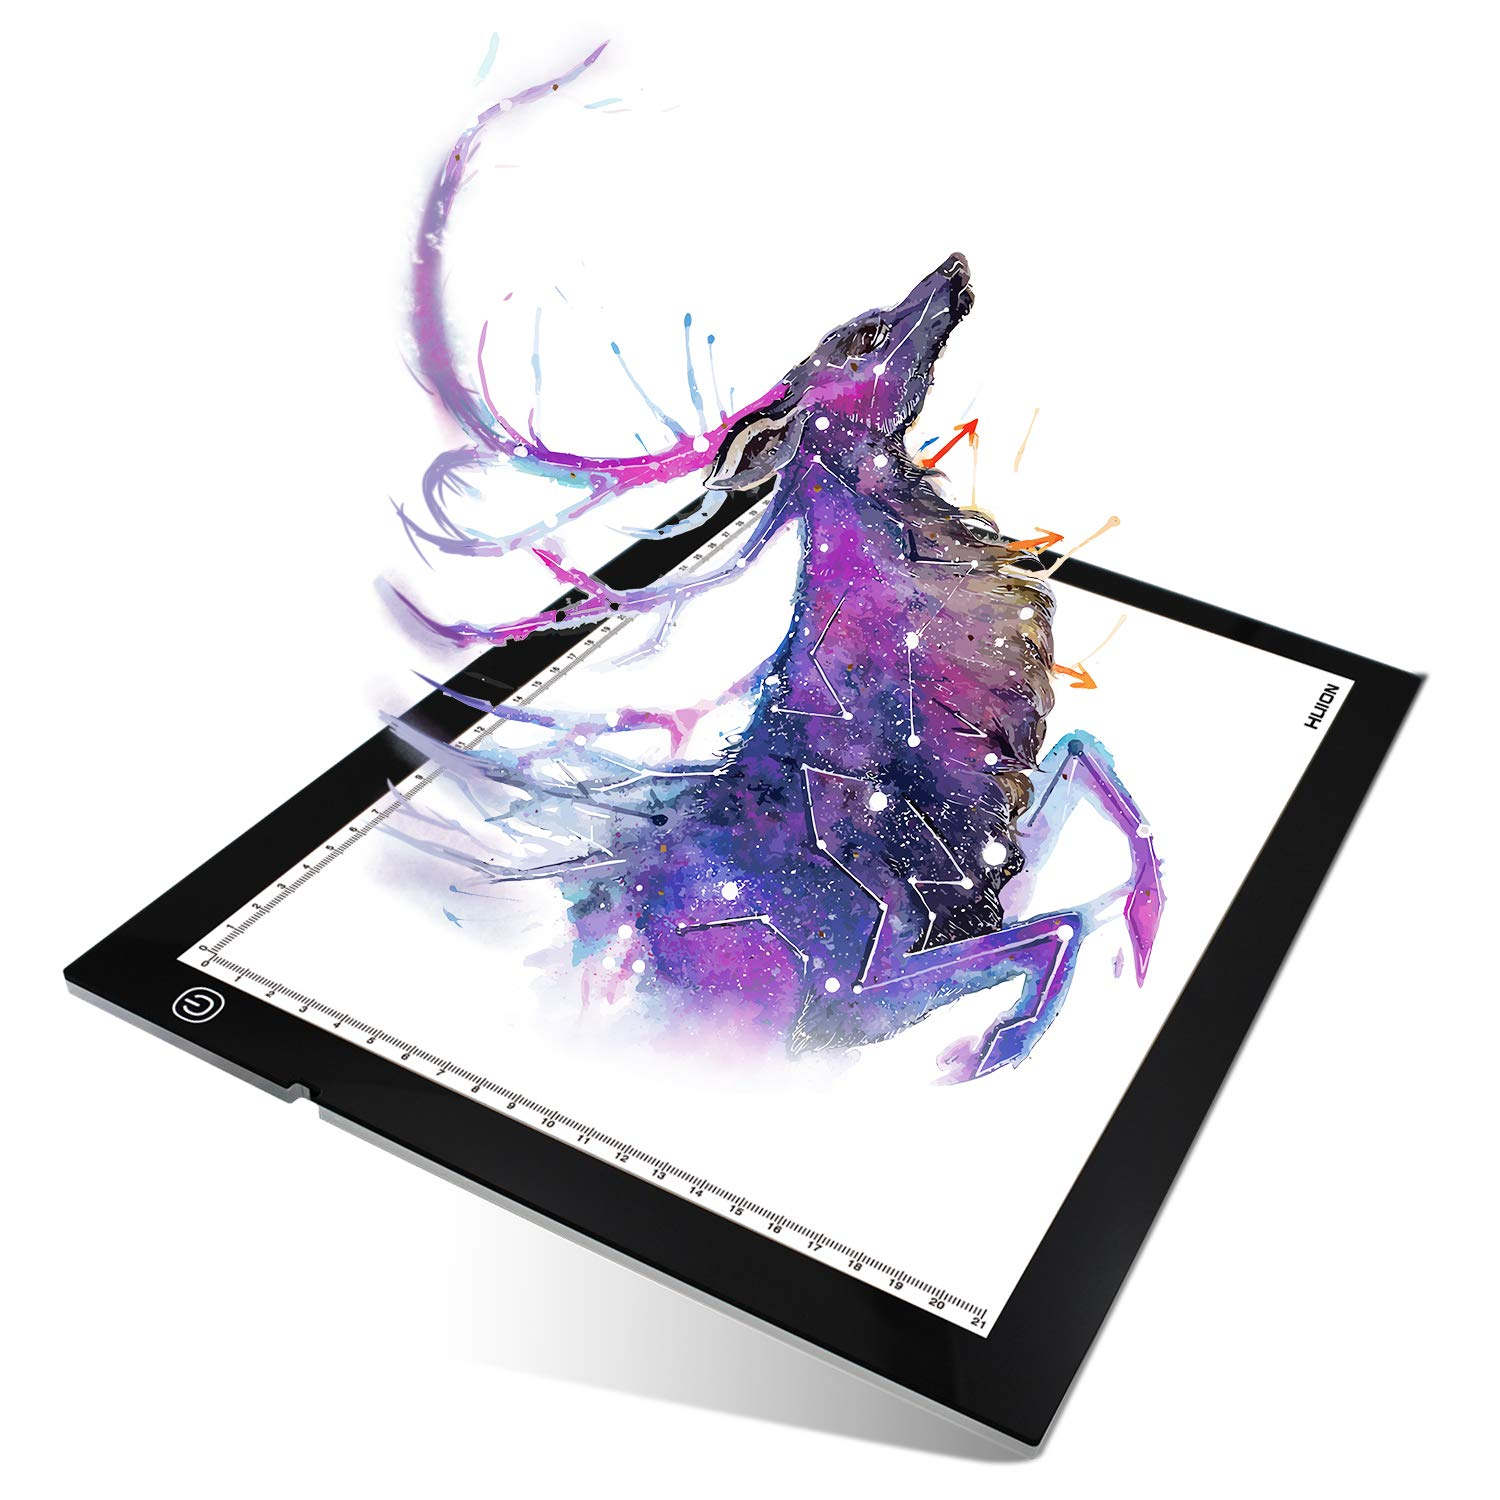 HUION A4 LED lightweight Light Pad Tracing Board super bright Lightning with Adjustable Illumination for Animation